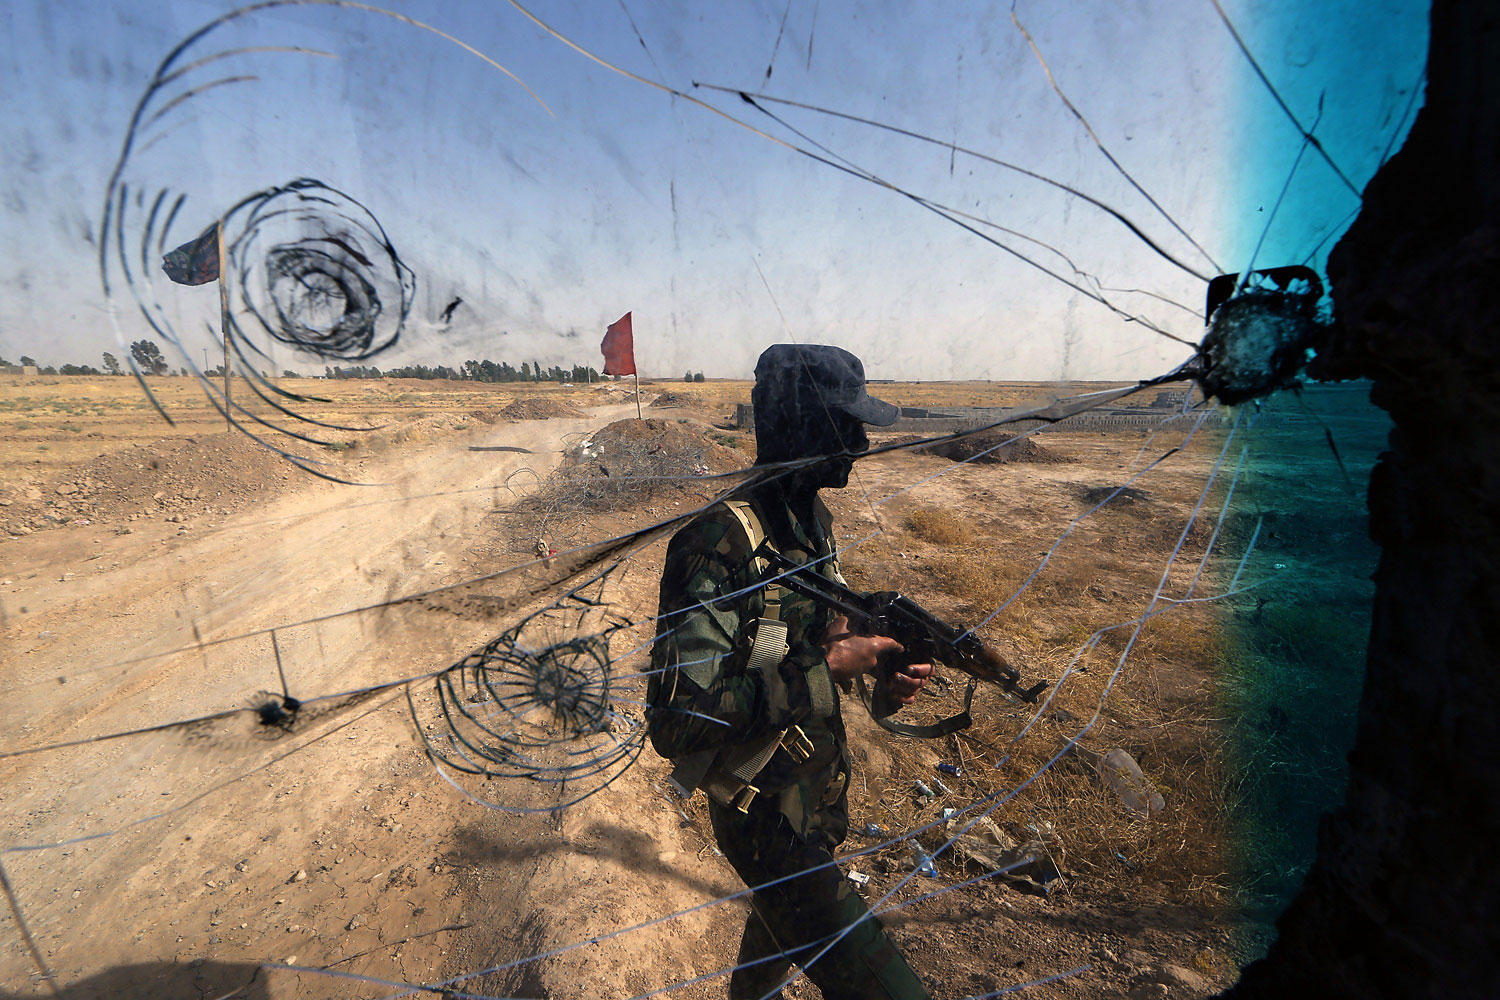 Iraqi Turkmen forces patrol a checkpoint on June 21, 2014, close to locations of jihadist Islamic State of Iraq and Syria (ISIS) fighters.